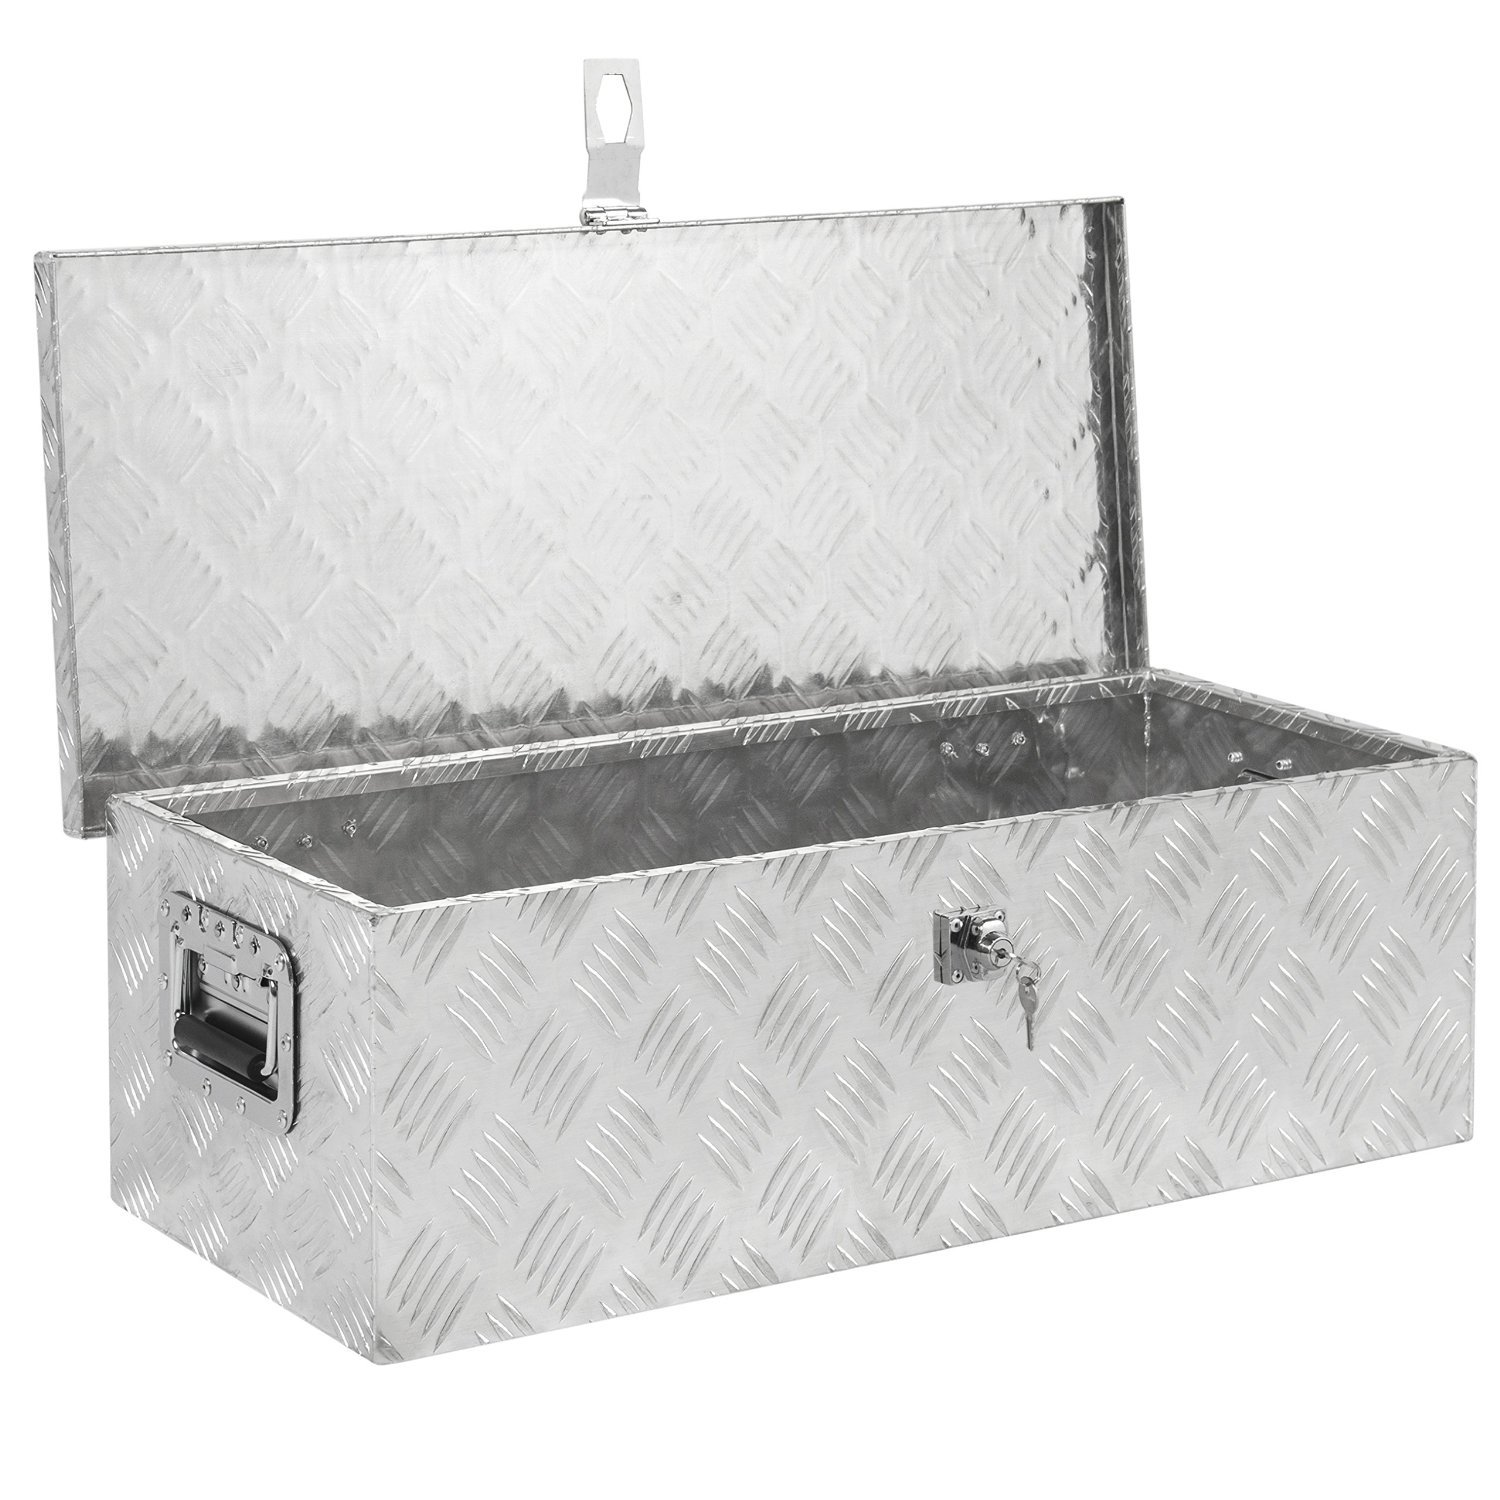 Million Parts 30'' Aluminum Camper Tool Box Tote Storage with Lock for Underbody Trailer Truck Pickup Bed ATV Storage